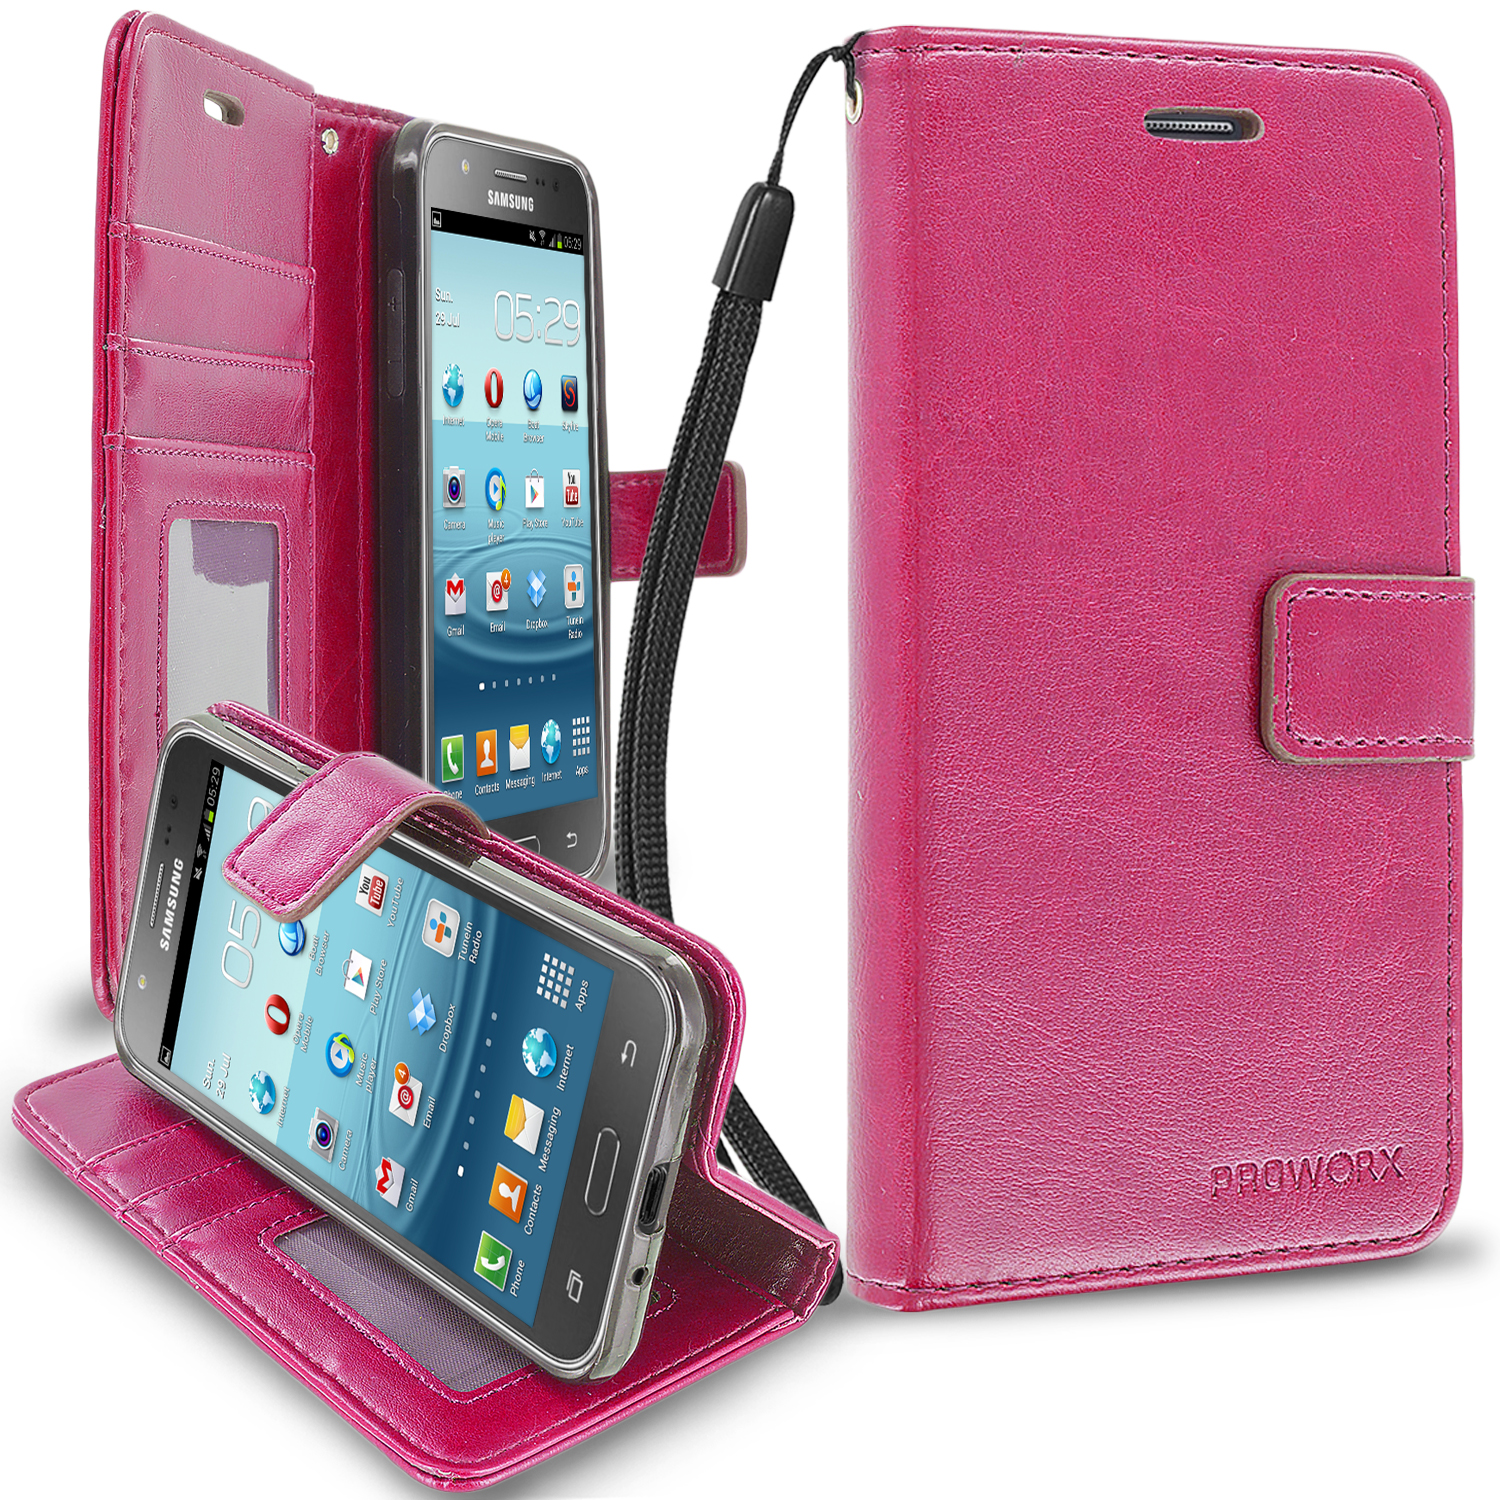 Samsung Galaxy J3 2016 Amp Prime Express Prime J3V Hot Pink ProWorx Wallet Case Luxury PU Leather Case Cover With Card Slots & Stand